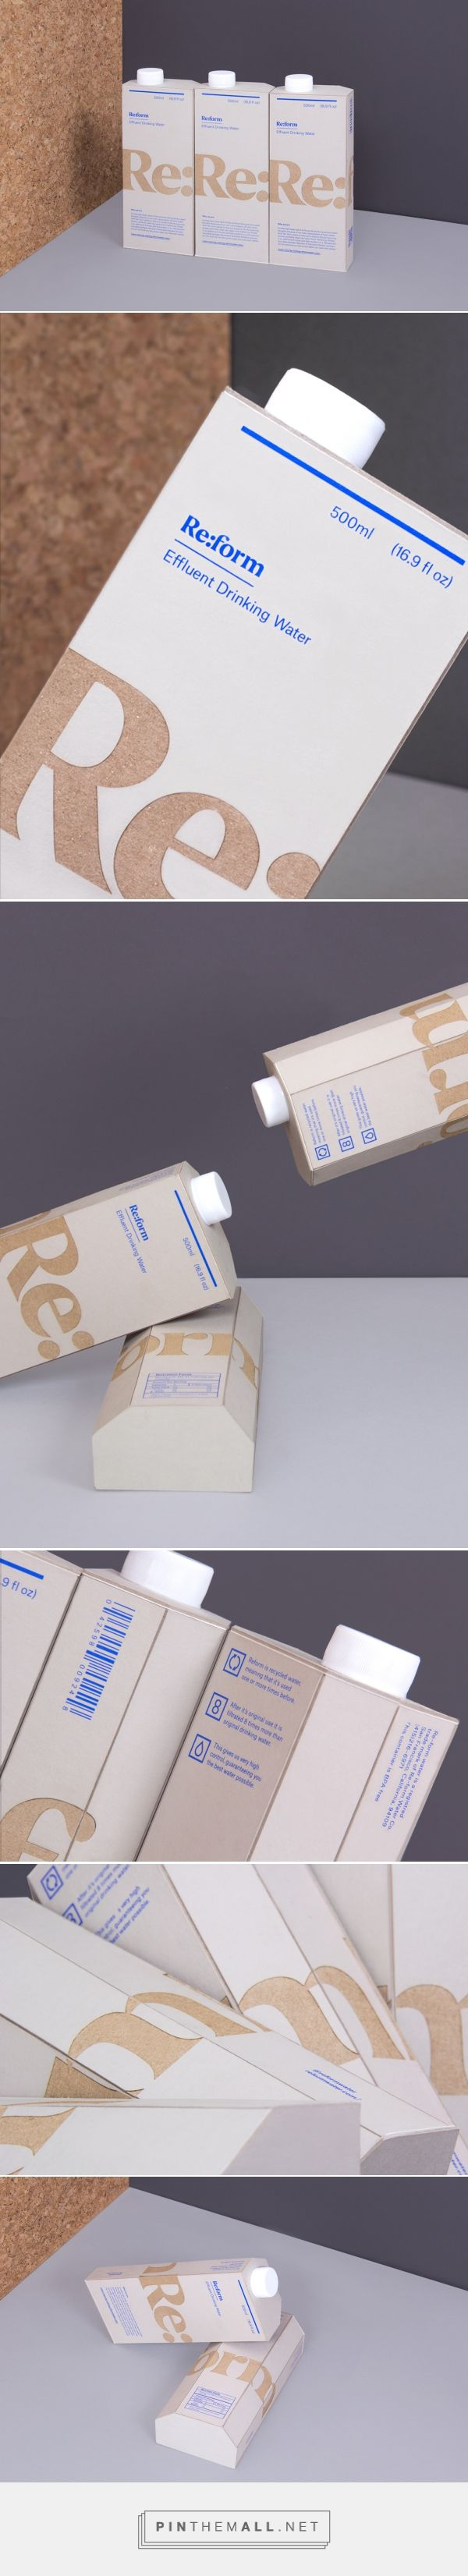 Re:form. Rethink the way you drink. #packaging #design (View more at www.aldenchong.com)